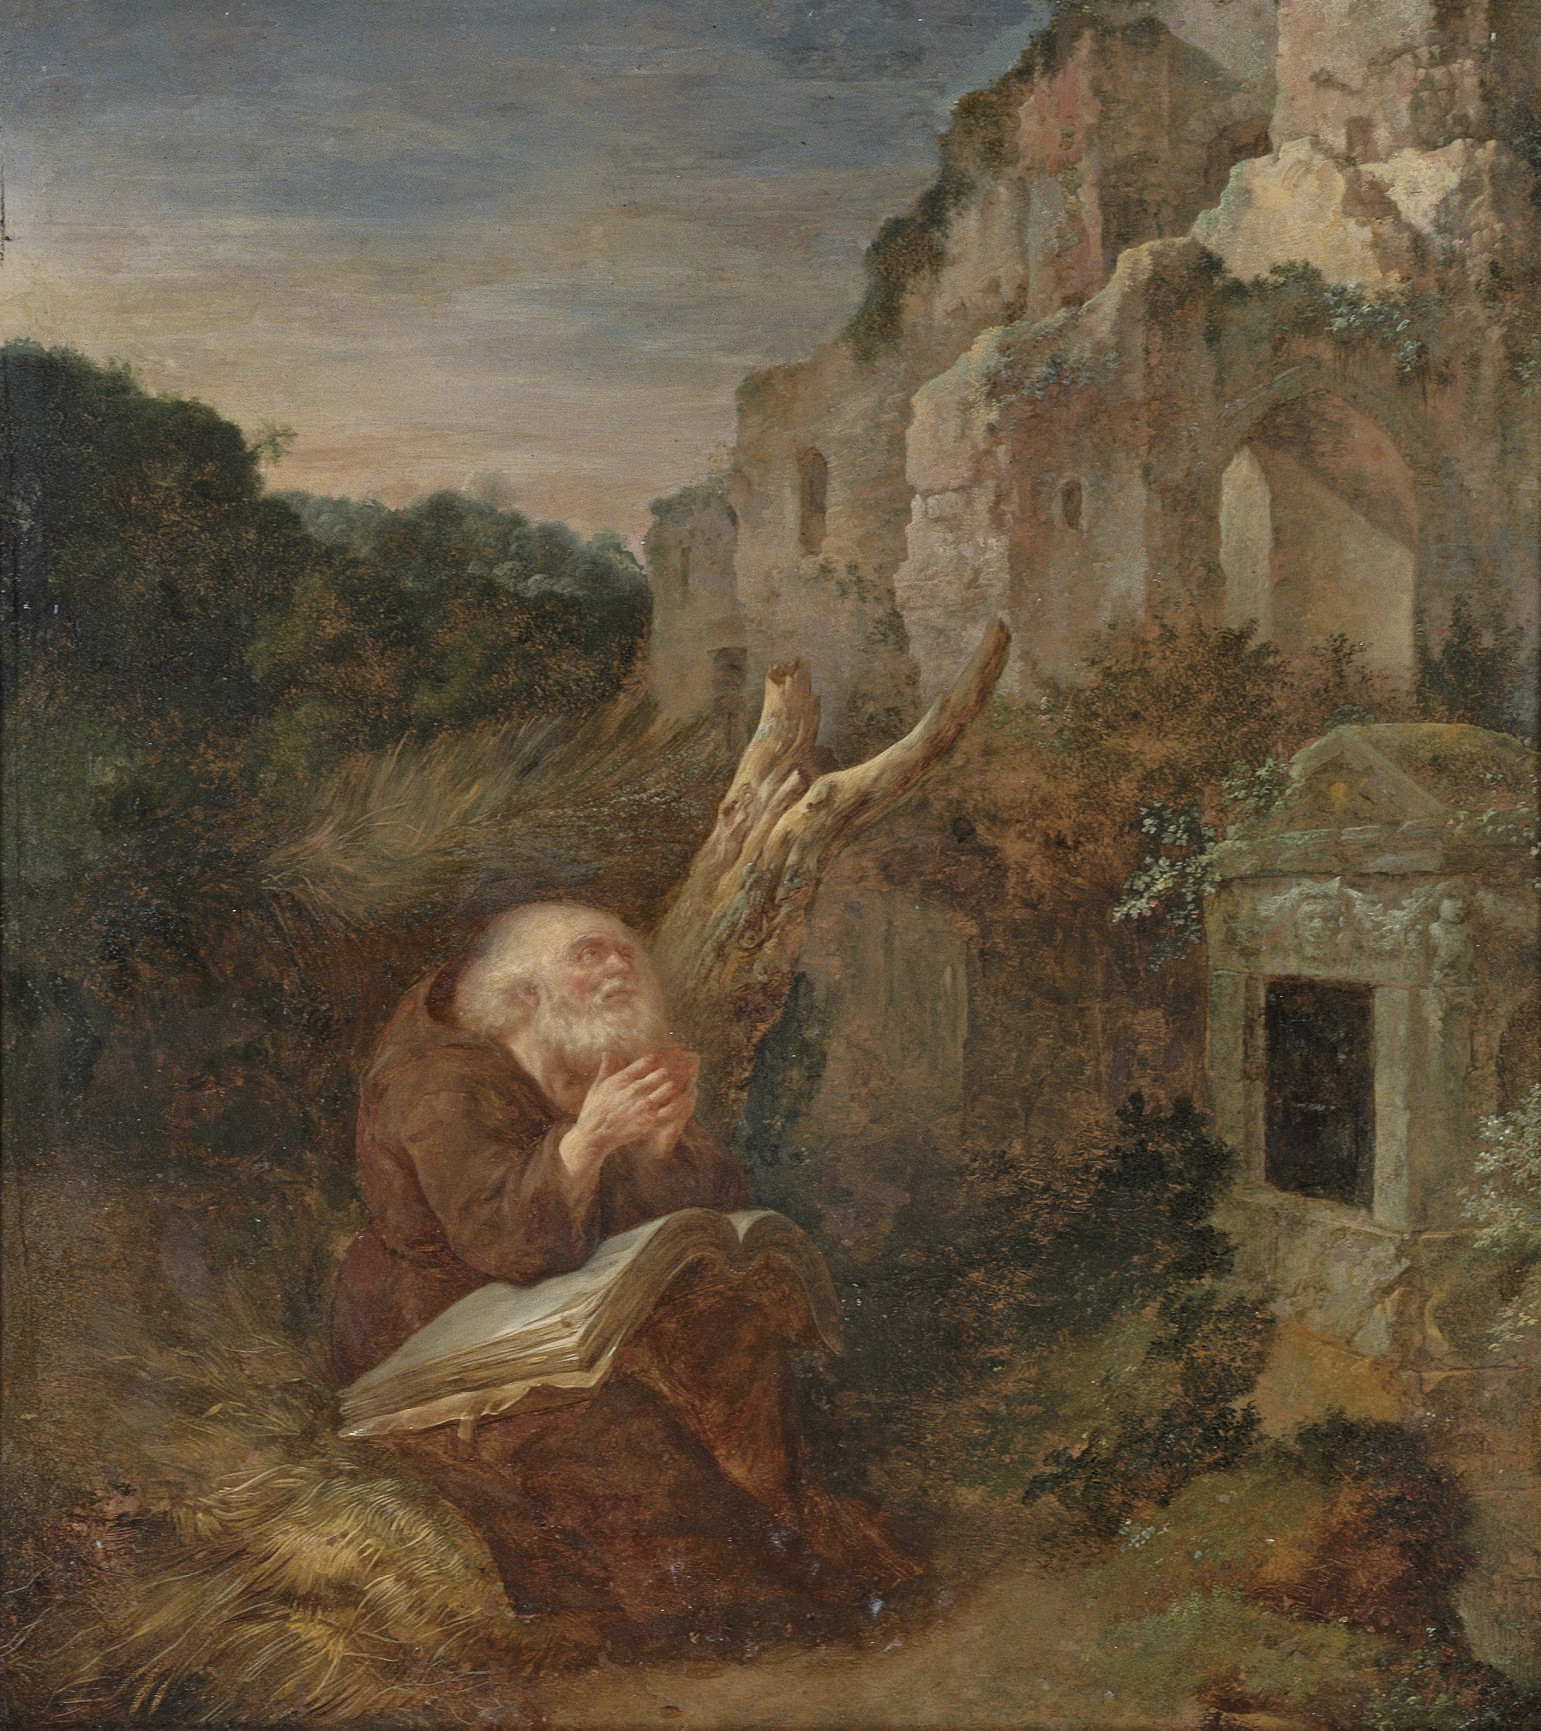 A hermit praying before a tomb, a landscape with ruins beyond